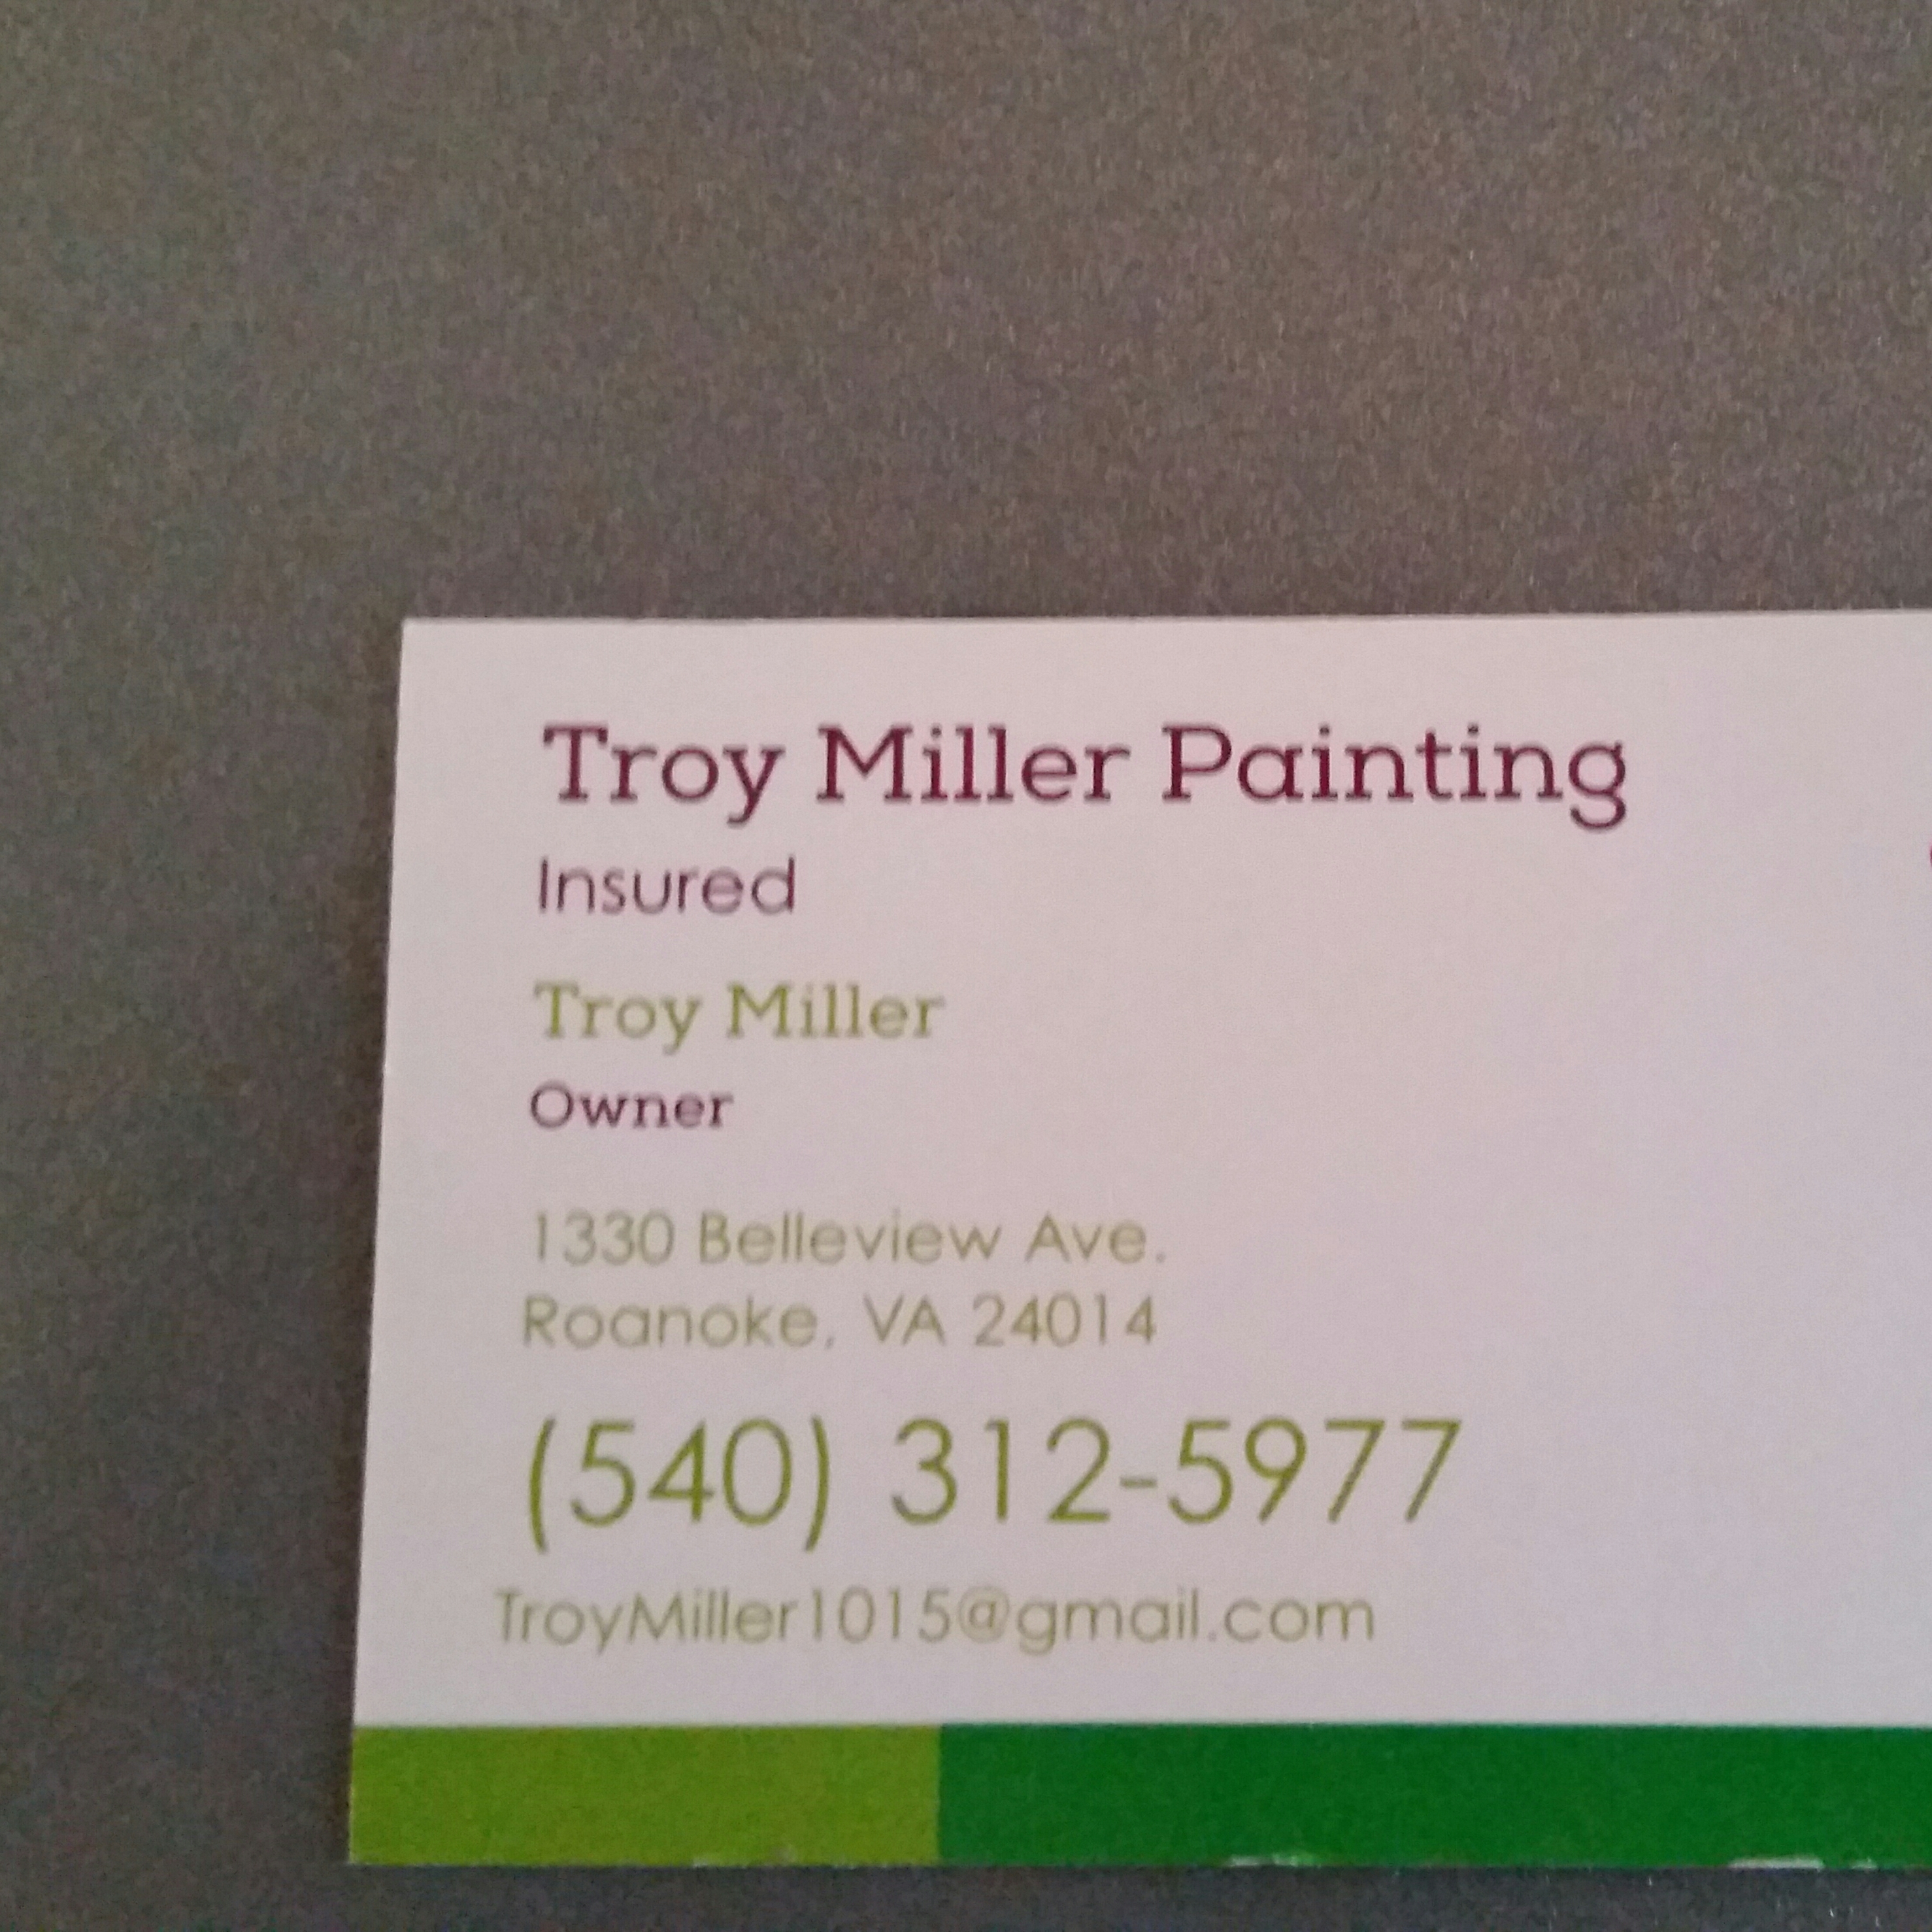 Troy Miller Painting